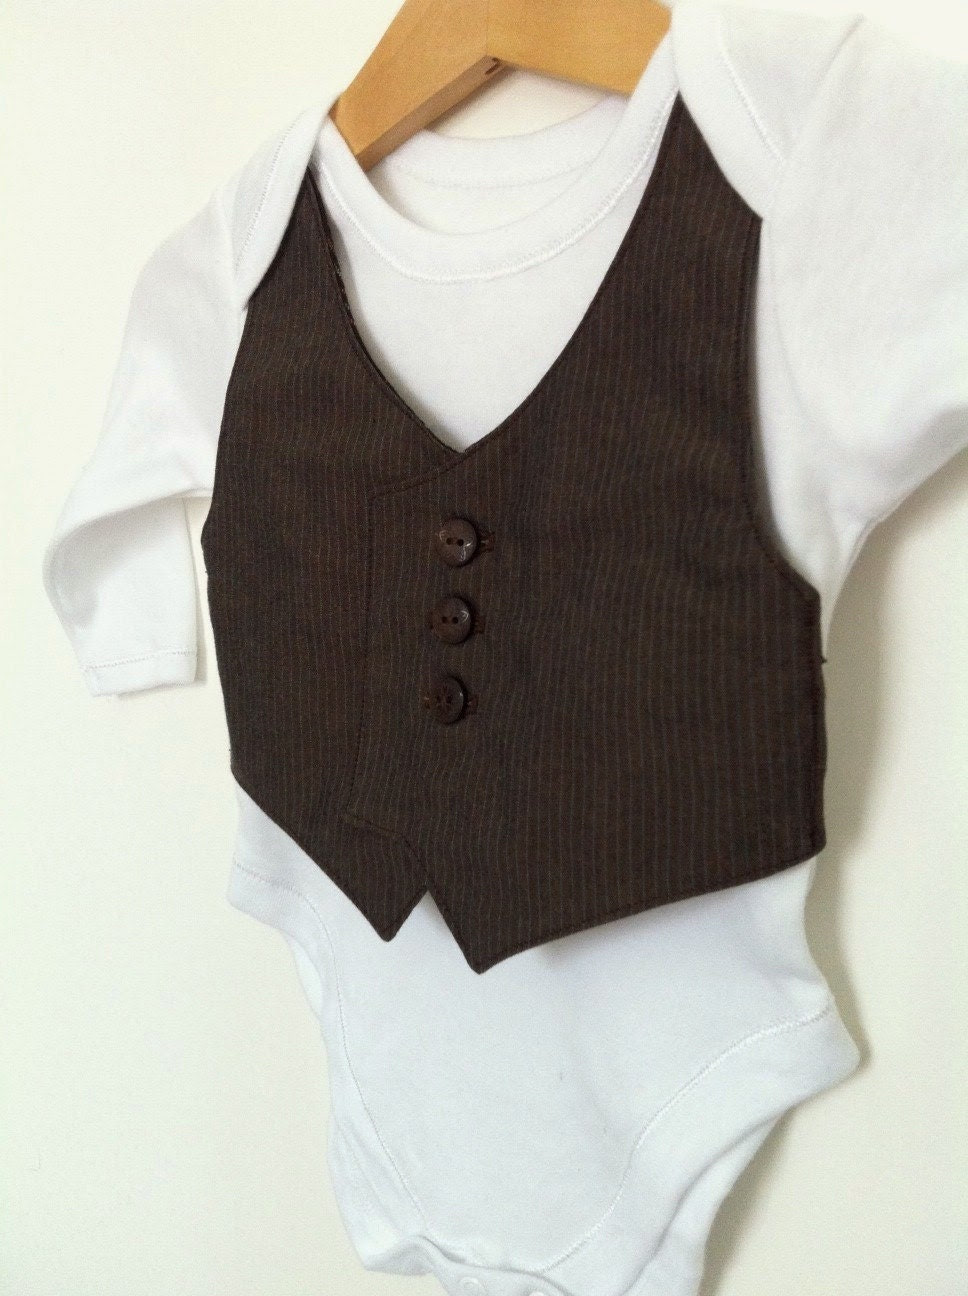 0-3mths baby waistcoat onesie/baby vest, long sleeved, brown stripe, upcycled, christening, , baby suit, smart baby